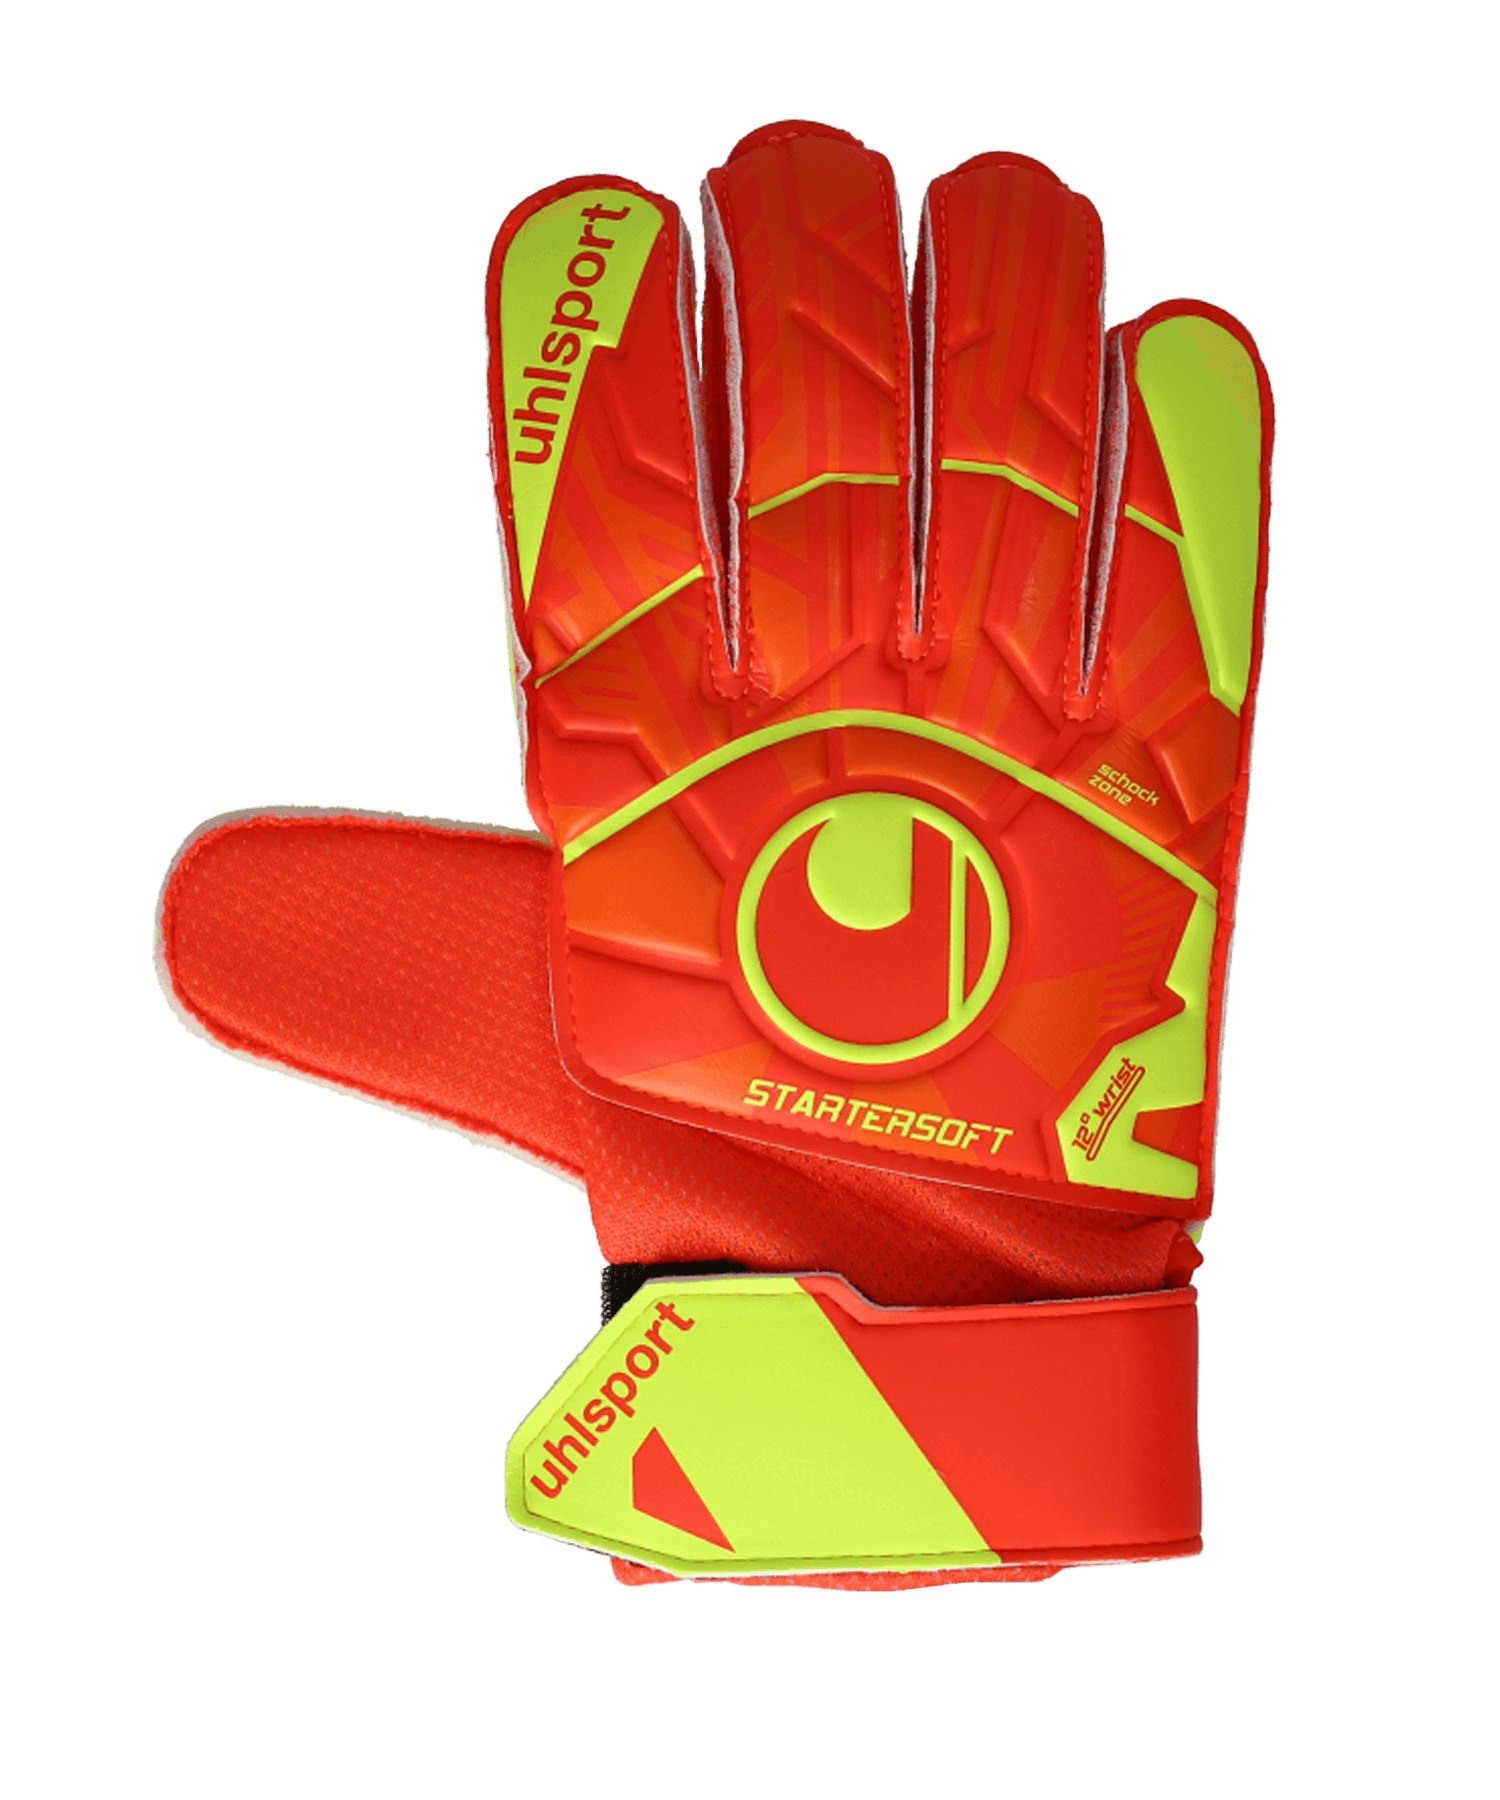 Uhlsport Dyn. Impulse Starter Soft TW-Handschuh Orange F01 - orange